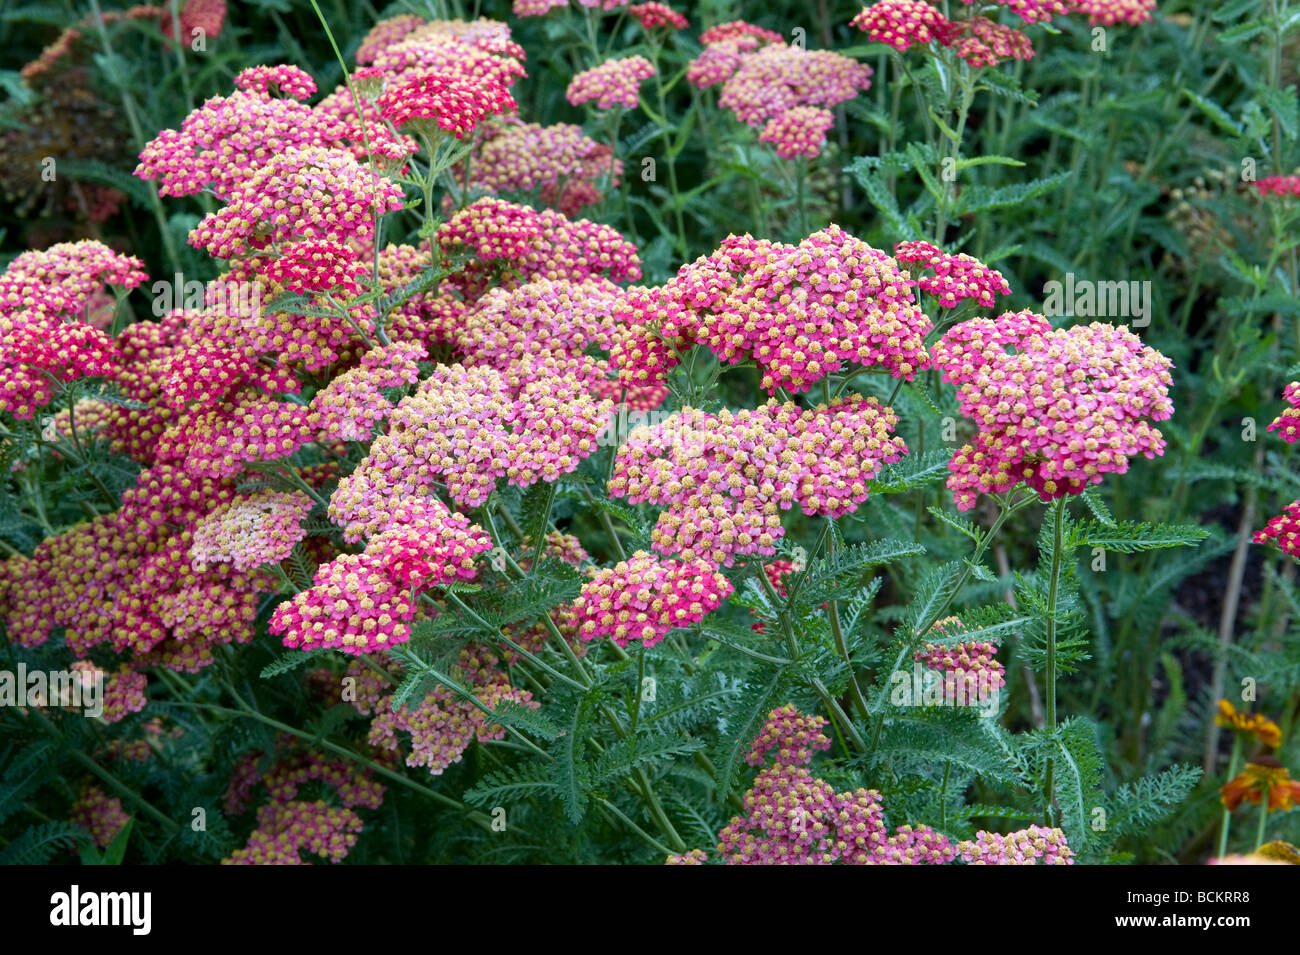 Asteraceae/Compositae Achillea millefolium `Cerise Queen`. Beautiful small pink flowers forming a larger flowerhead. - Stock Image